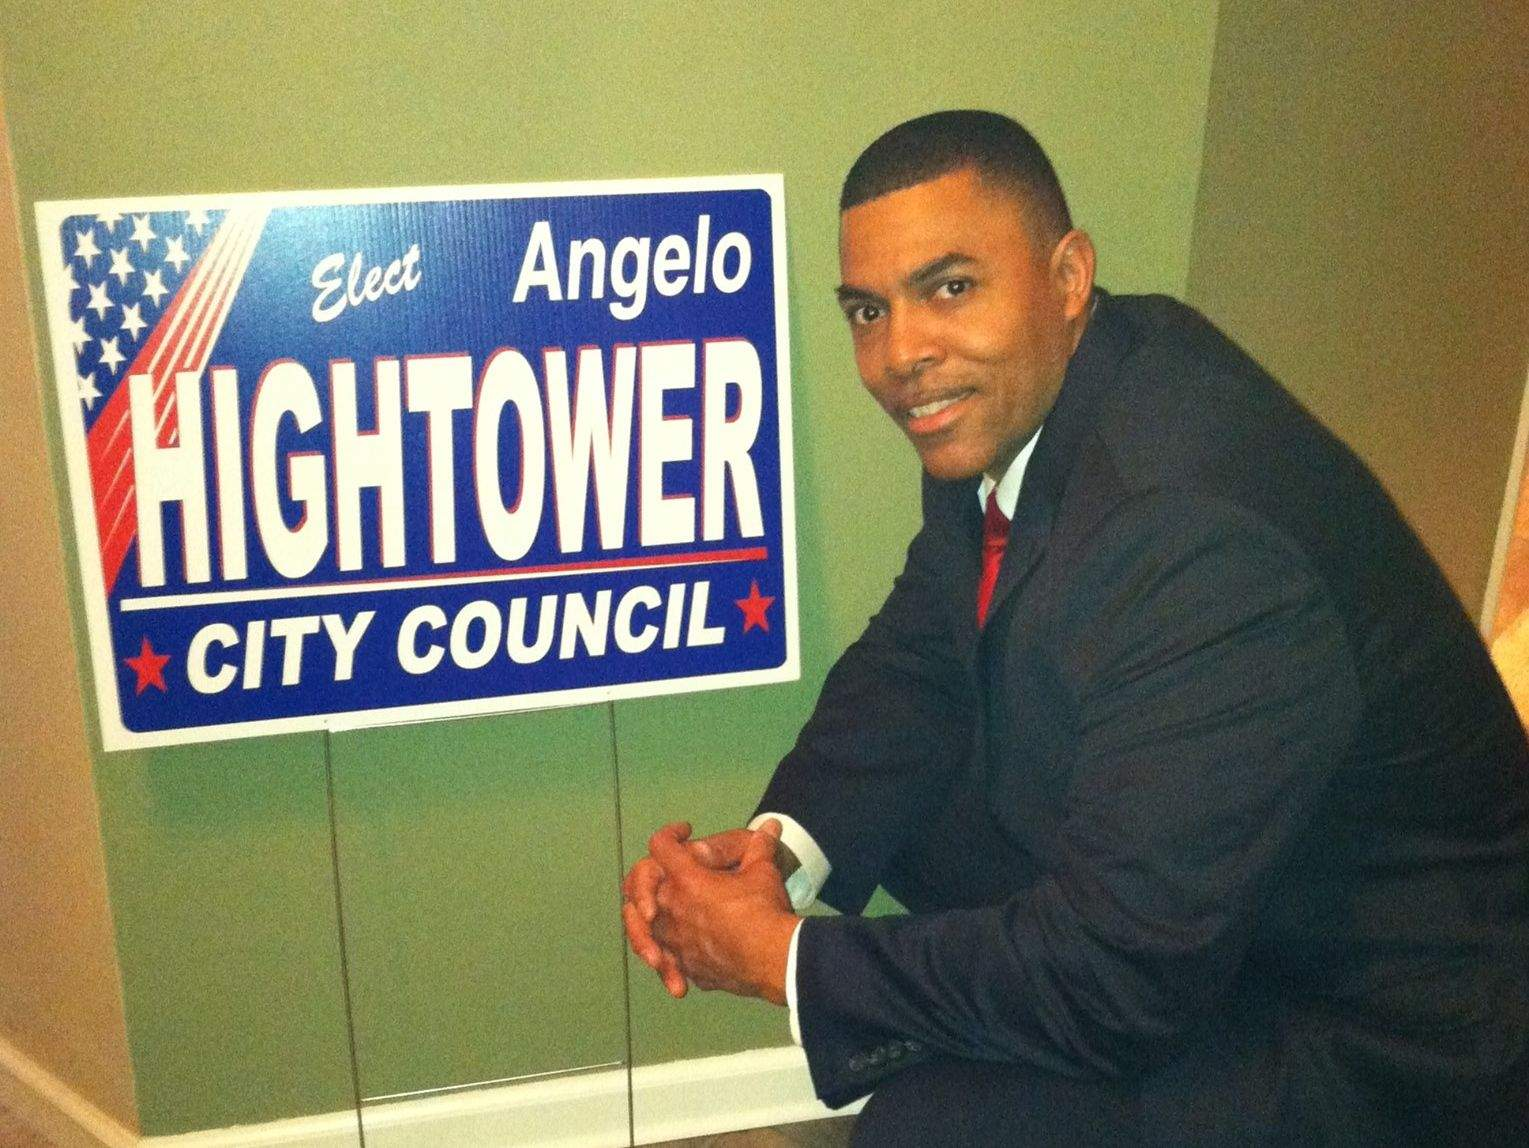 Marion City Commissioner Angelo Hightower has thrown his hat in the ring for the 2019 mayoral seat being vacated by Robert Butler.  Hightower made his official announcement via Facebook late Thursday evening.